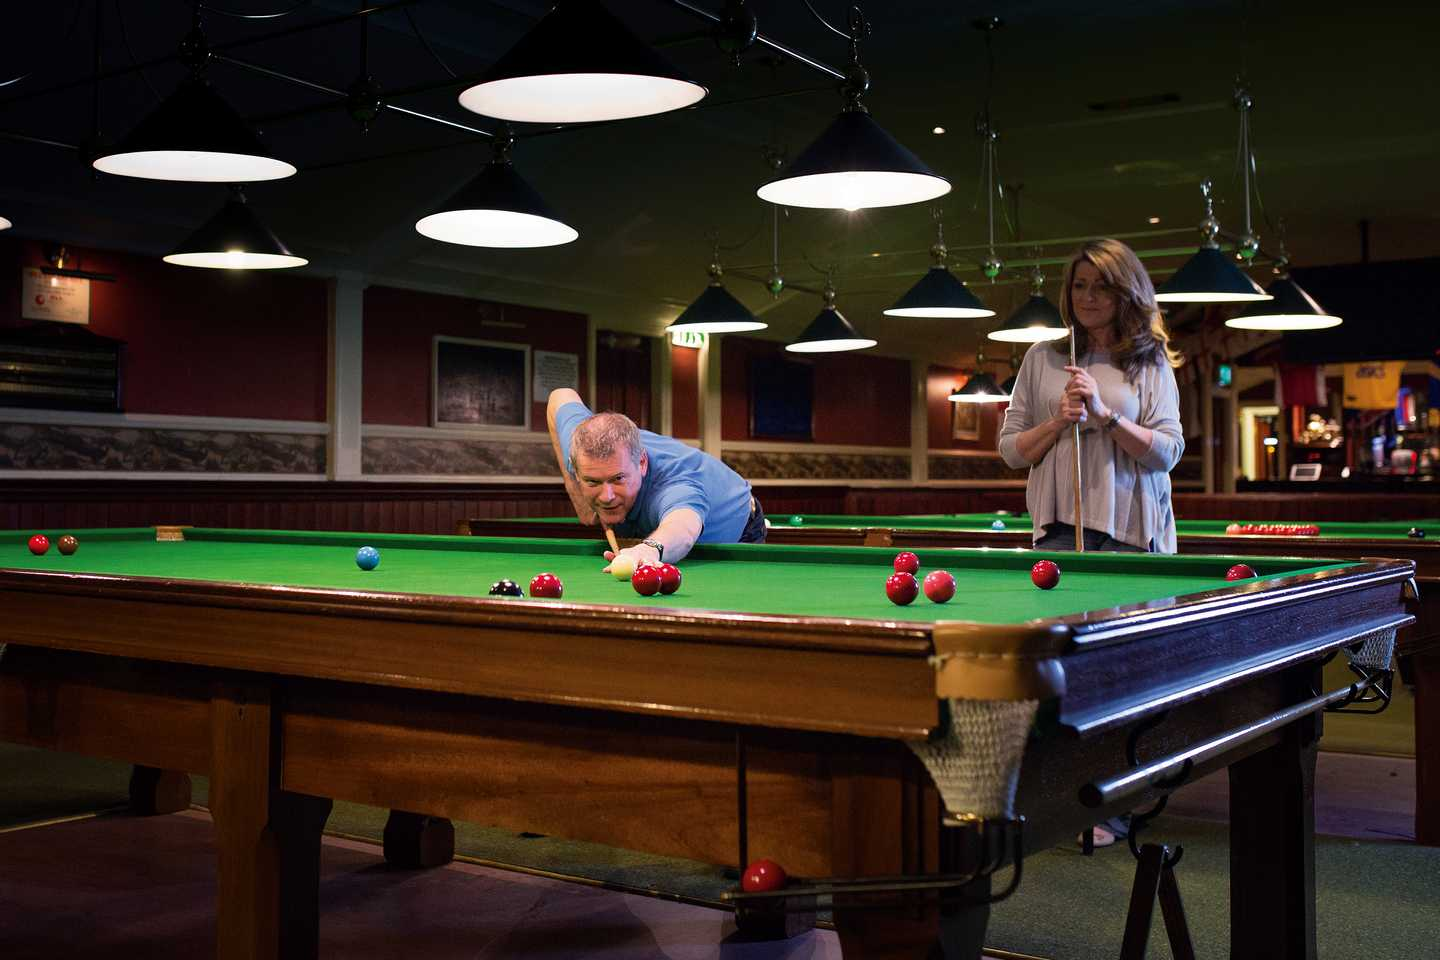 Owners playing a game of snooker